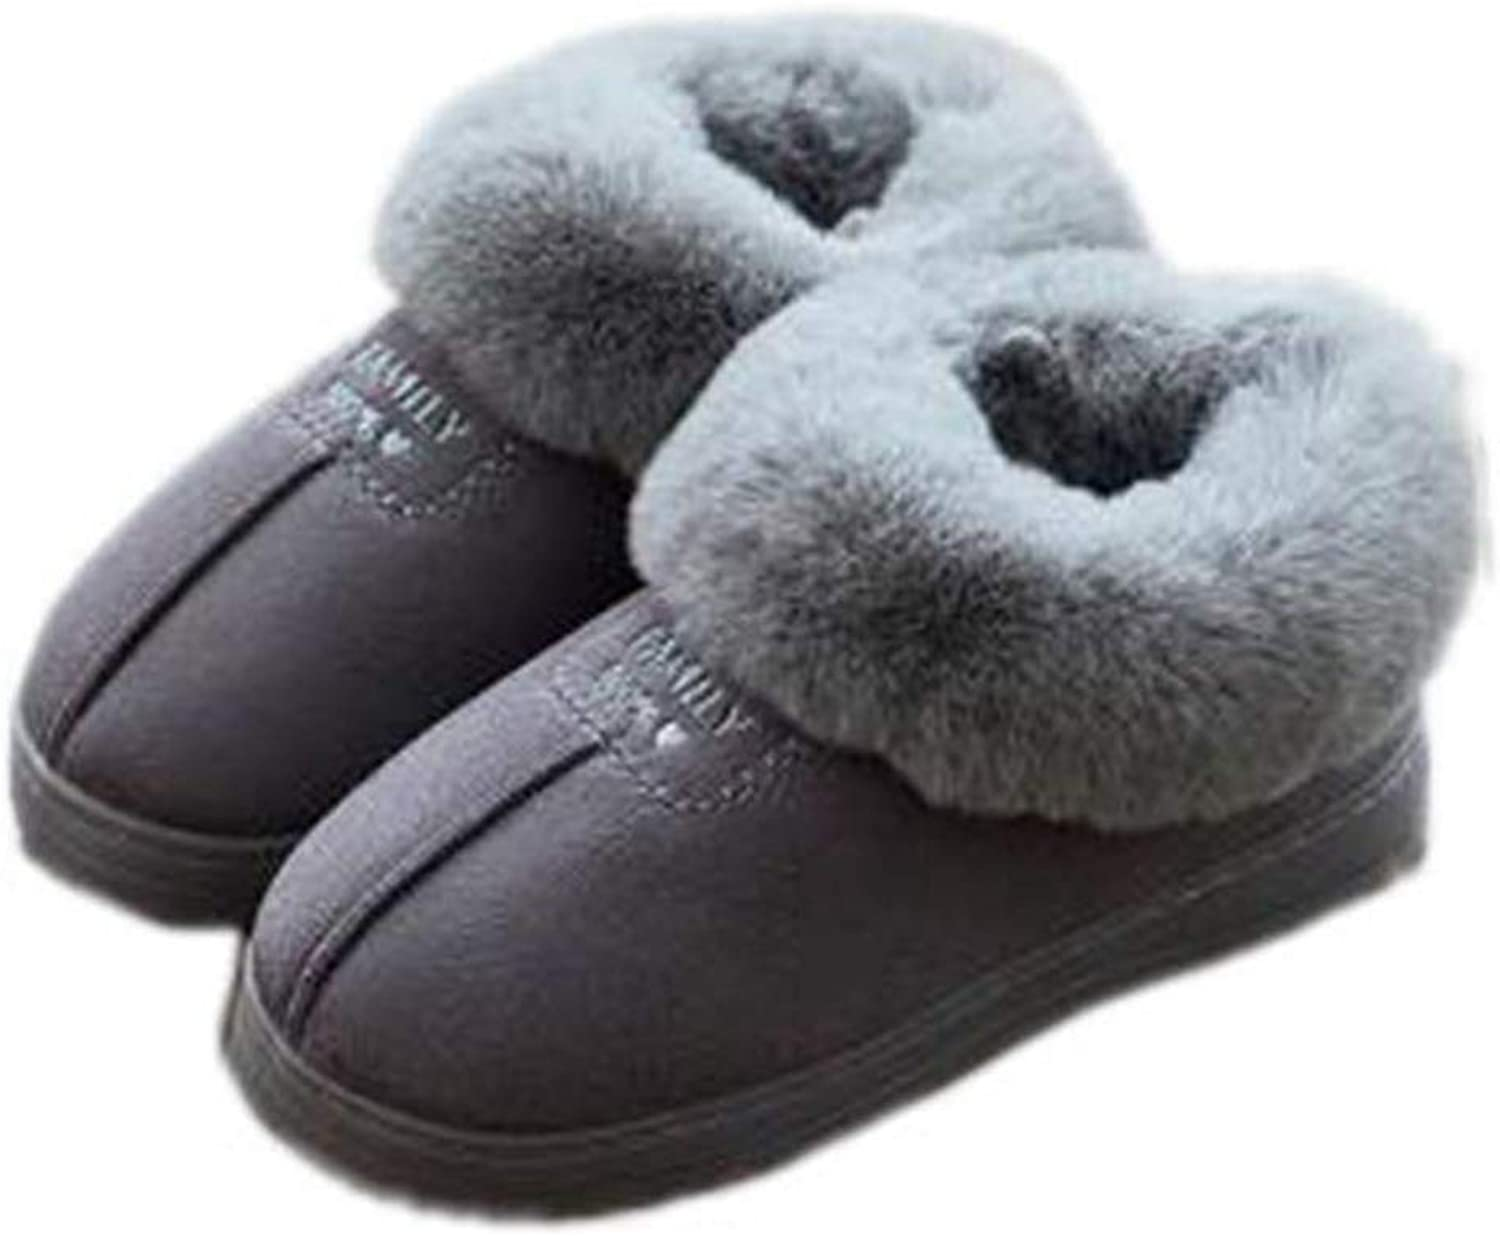 York Zhu Anti Slip Slippers Fur Fluffy Sliders Winter Plush Furry Indoor & Outdoor